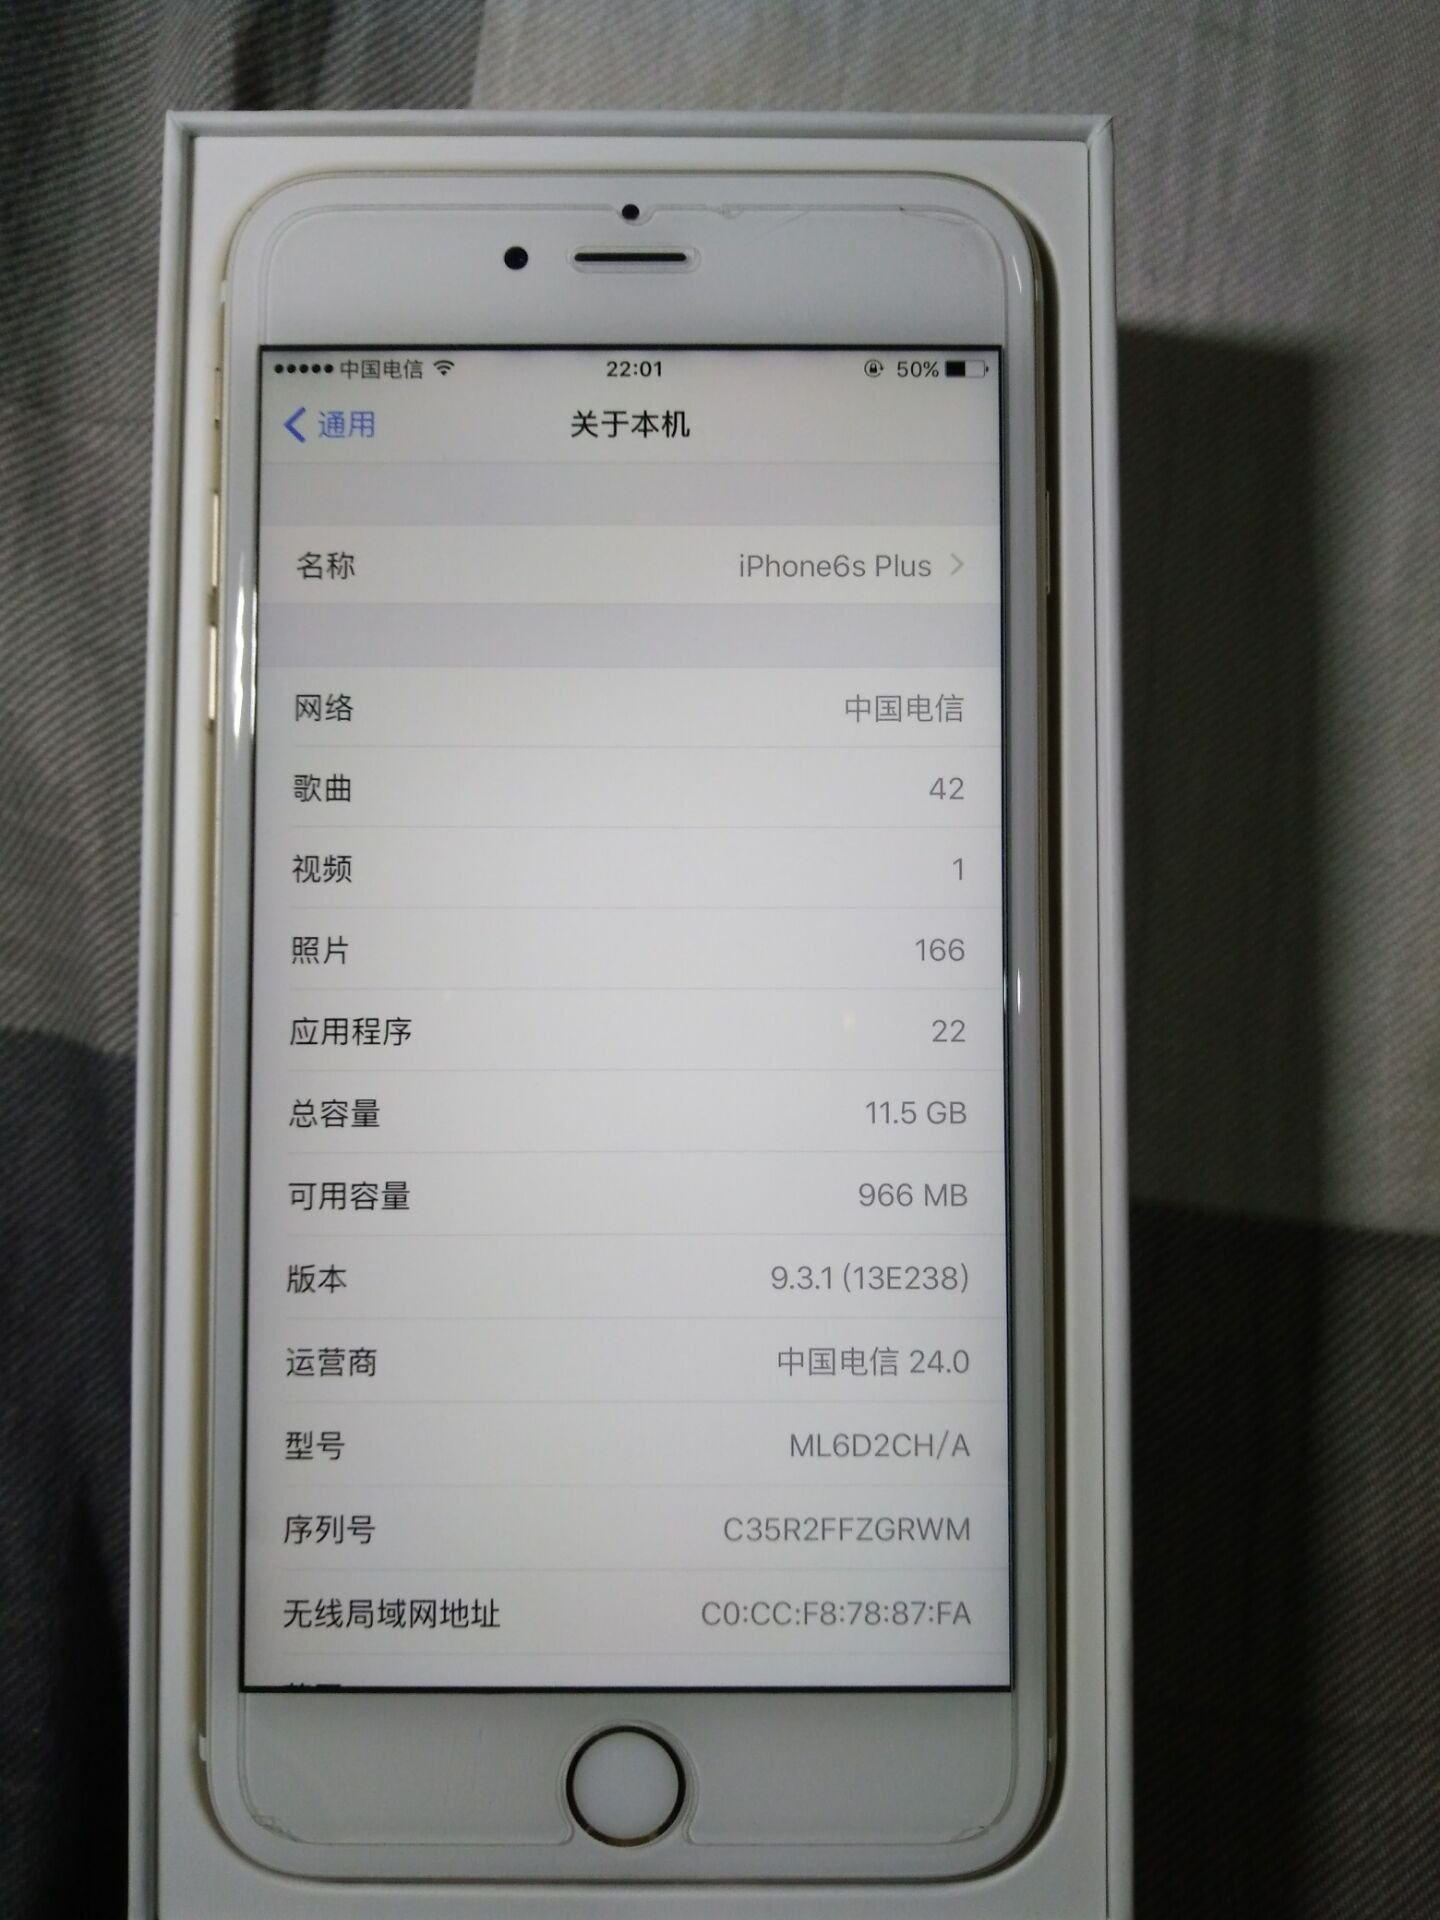 iphone6splus尺寸-iphone6splus和iphone7/苹果6splus